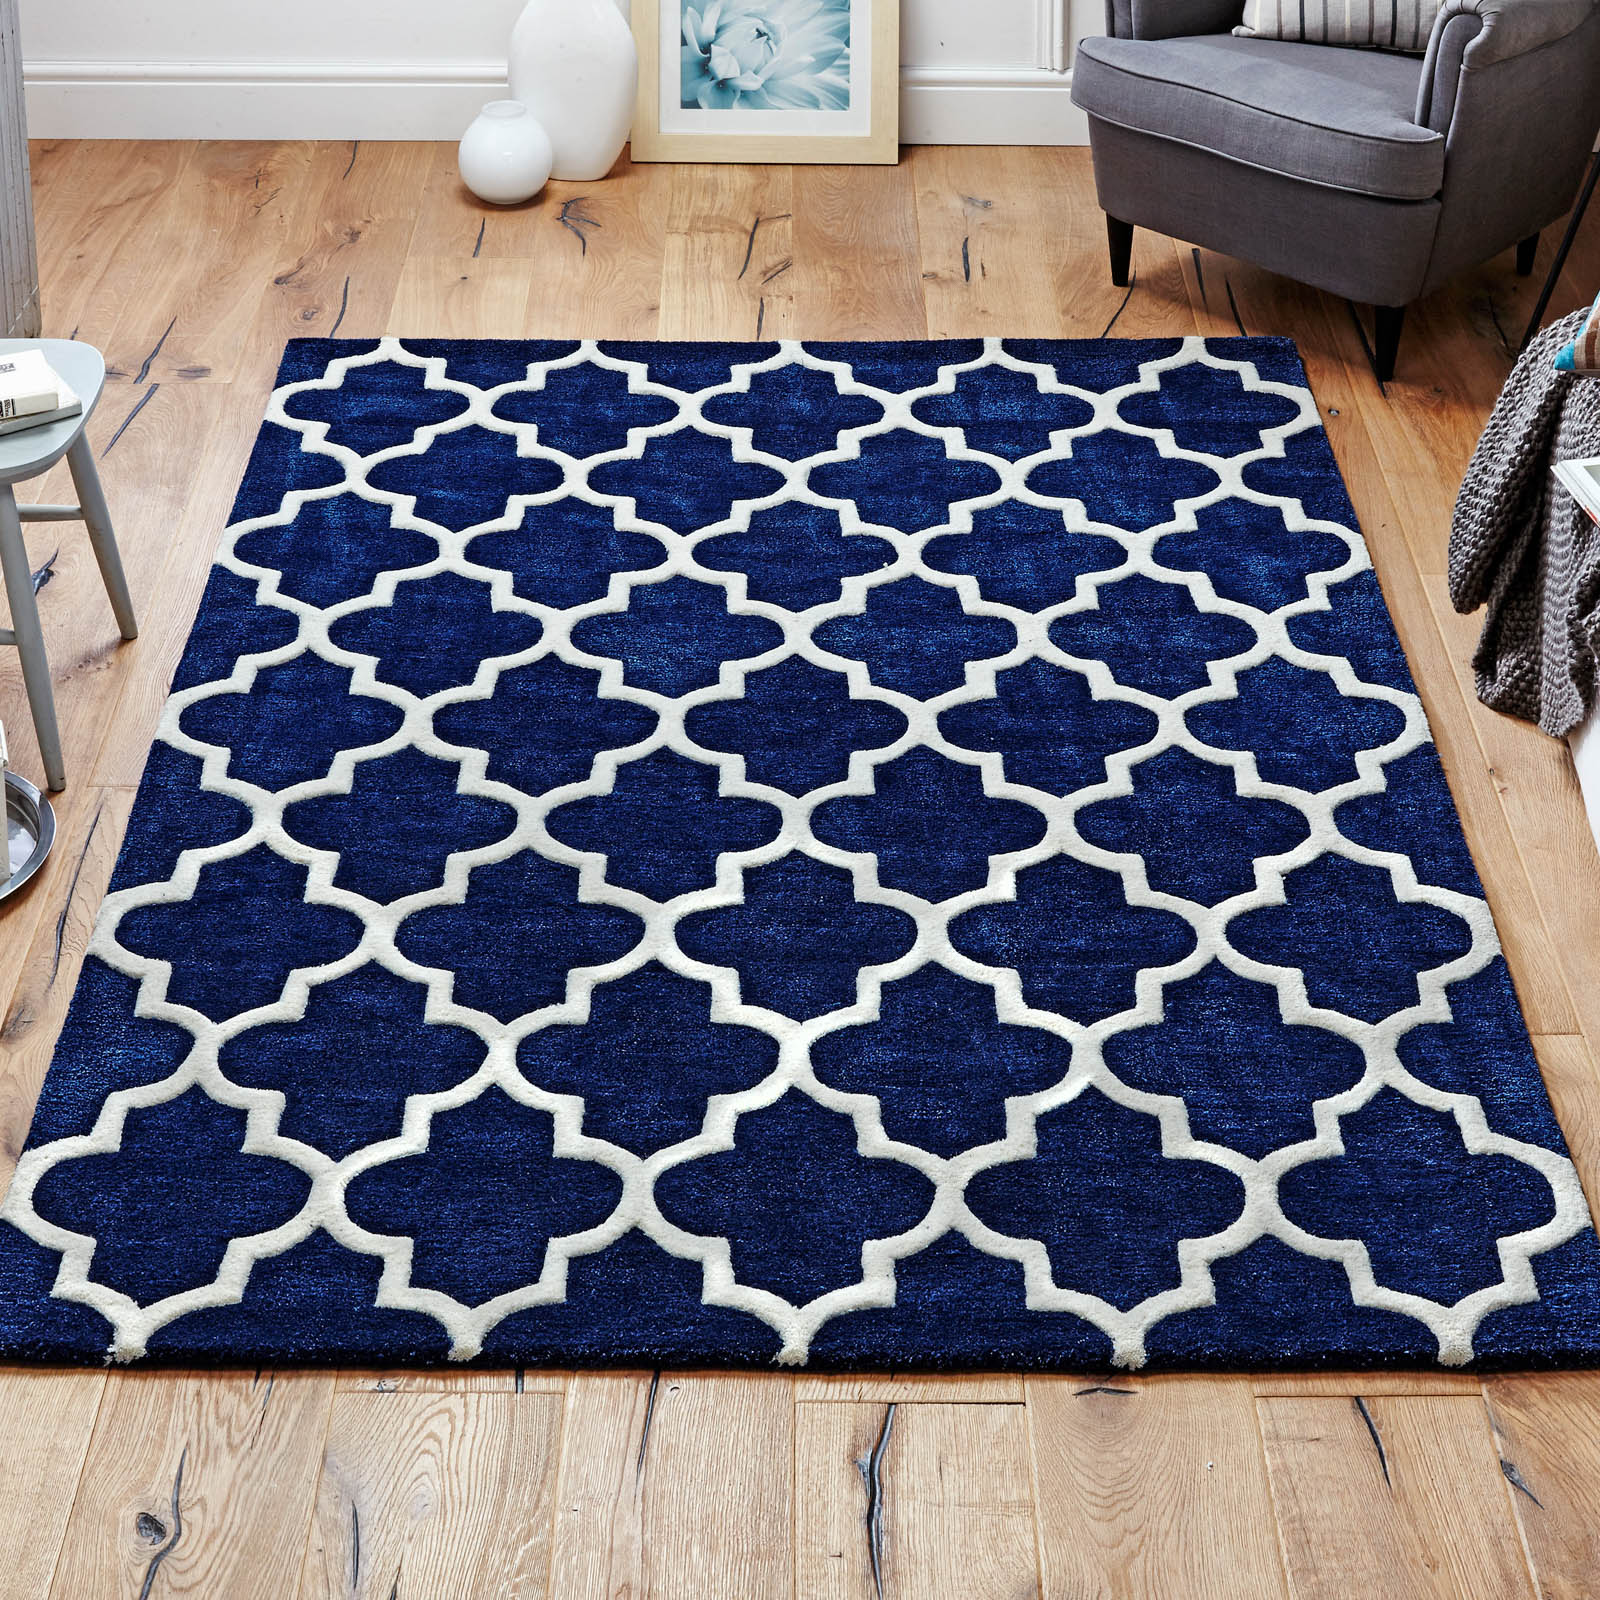 Arabesque Rug In Blue Free Uk Delivery The Rug Seller